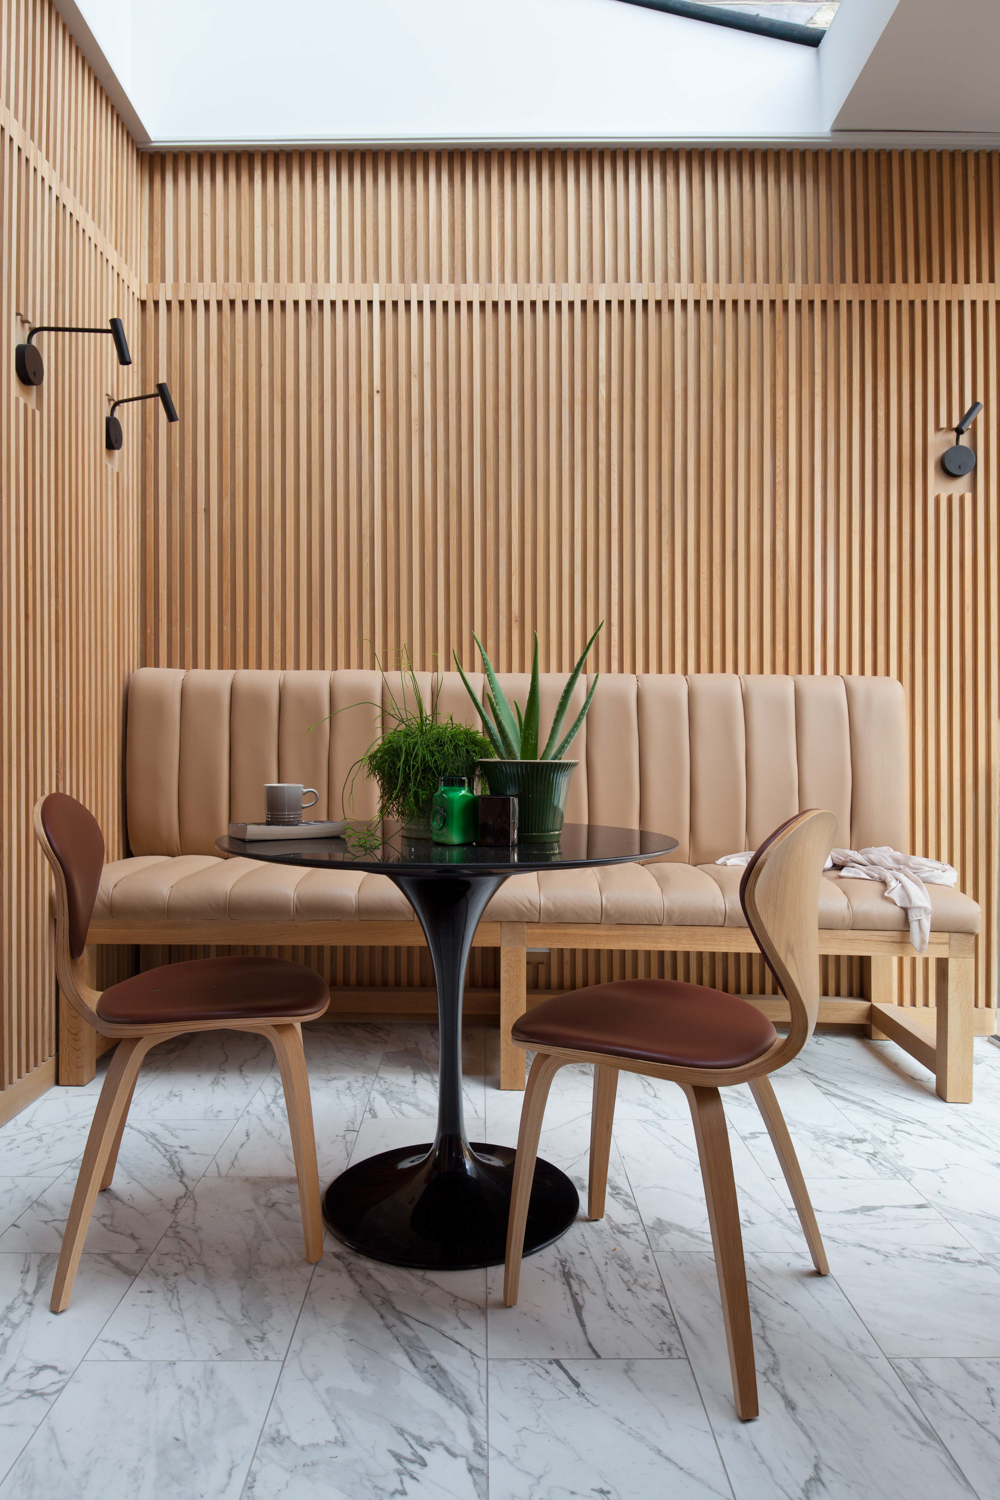 Image caption: The interiors of a luxury residential property designed by architect Harvey Langston Jones | Image credit: Brendan Cox/The Tower